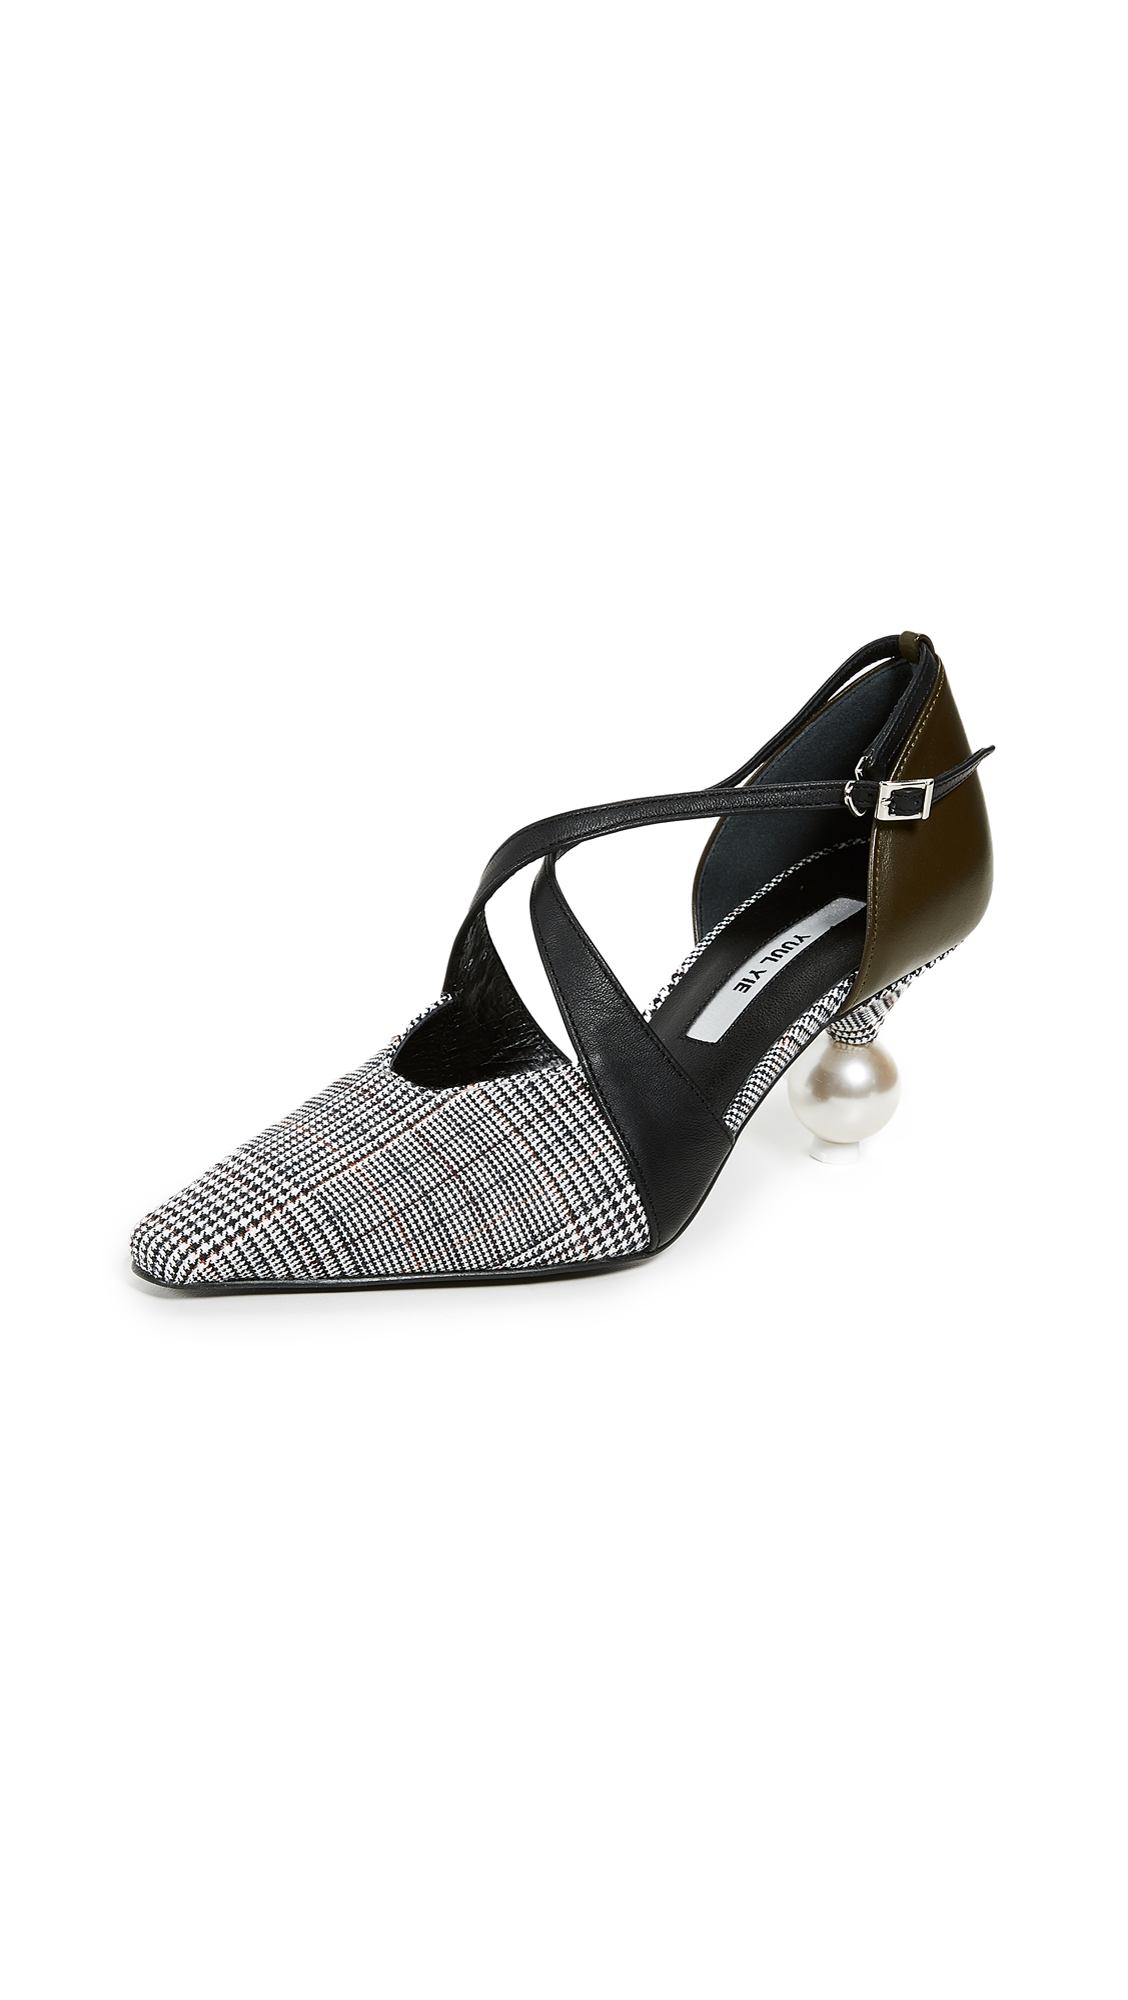 Yuul Yie Ankle Strap Cocktail Heels - Green Check/Olive/Black